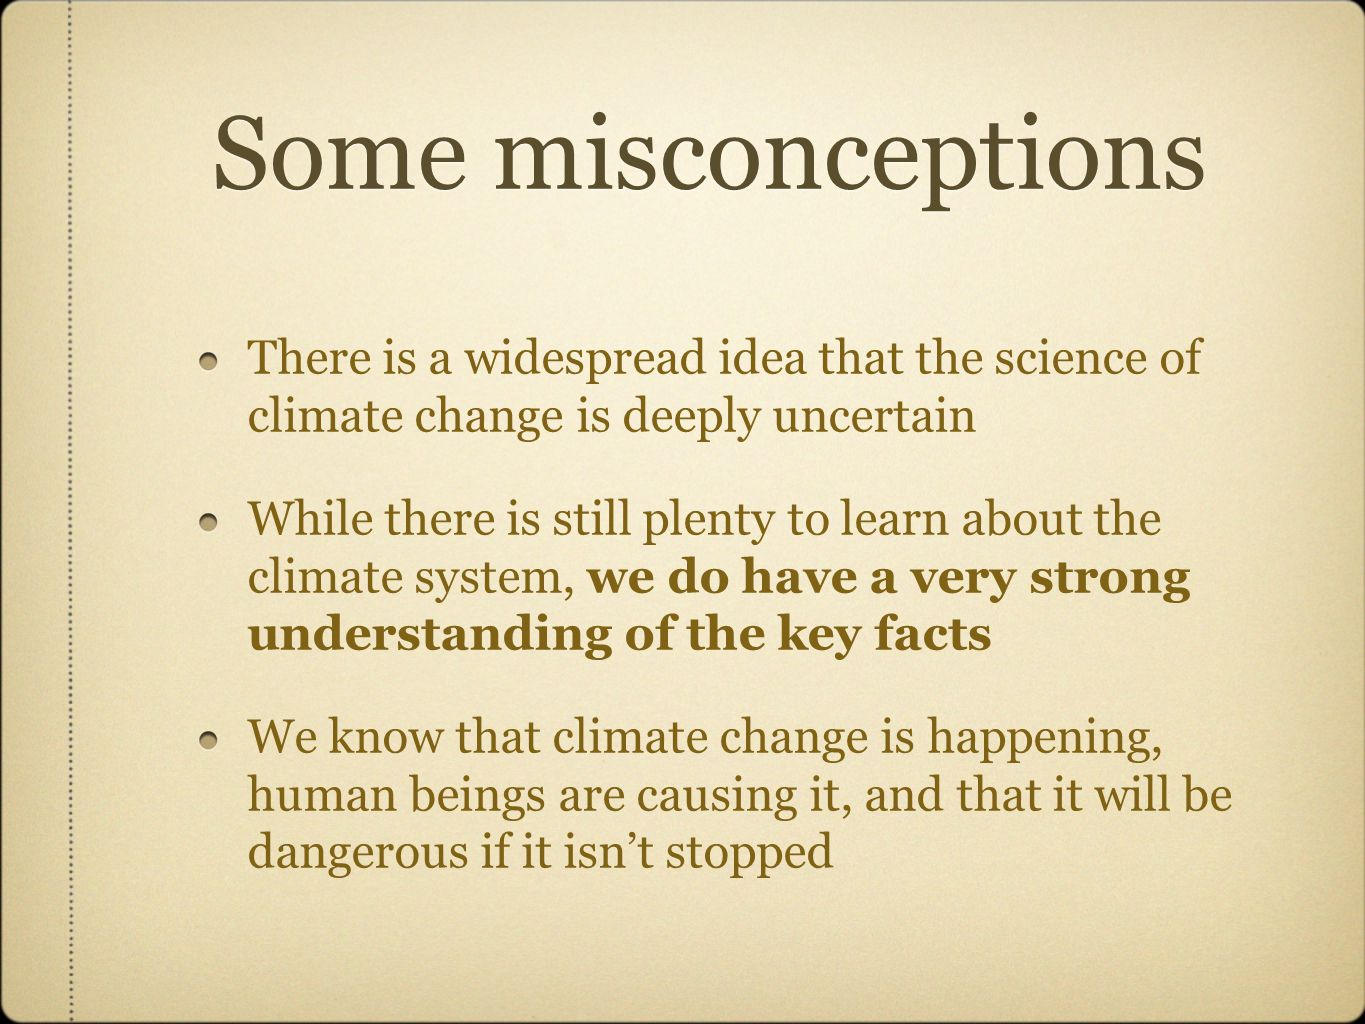 Some misconceptions There is a widespread idea that the science of climate change is deeply uncertain While there is still plenty to learn about the climate system, we do have a very strong understanding of the key facts We know that climate change is happening, human beings are causing it, and that it will be dangerous if it isn't stopped